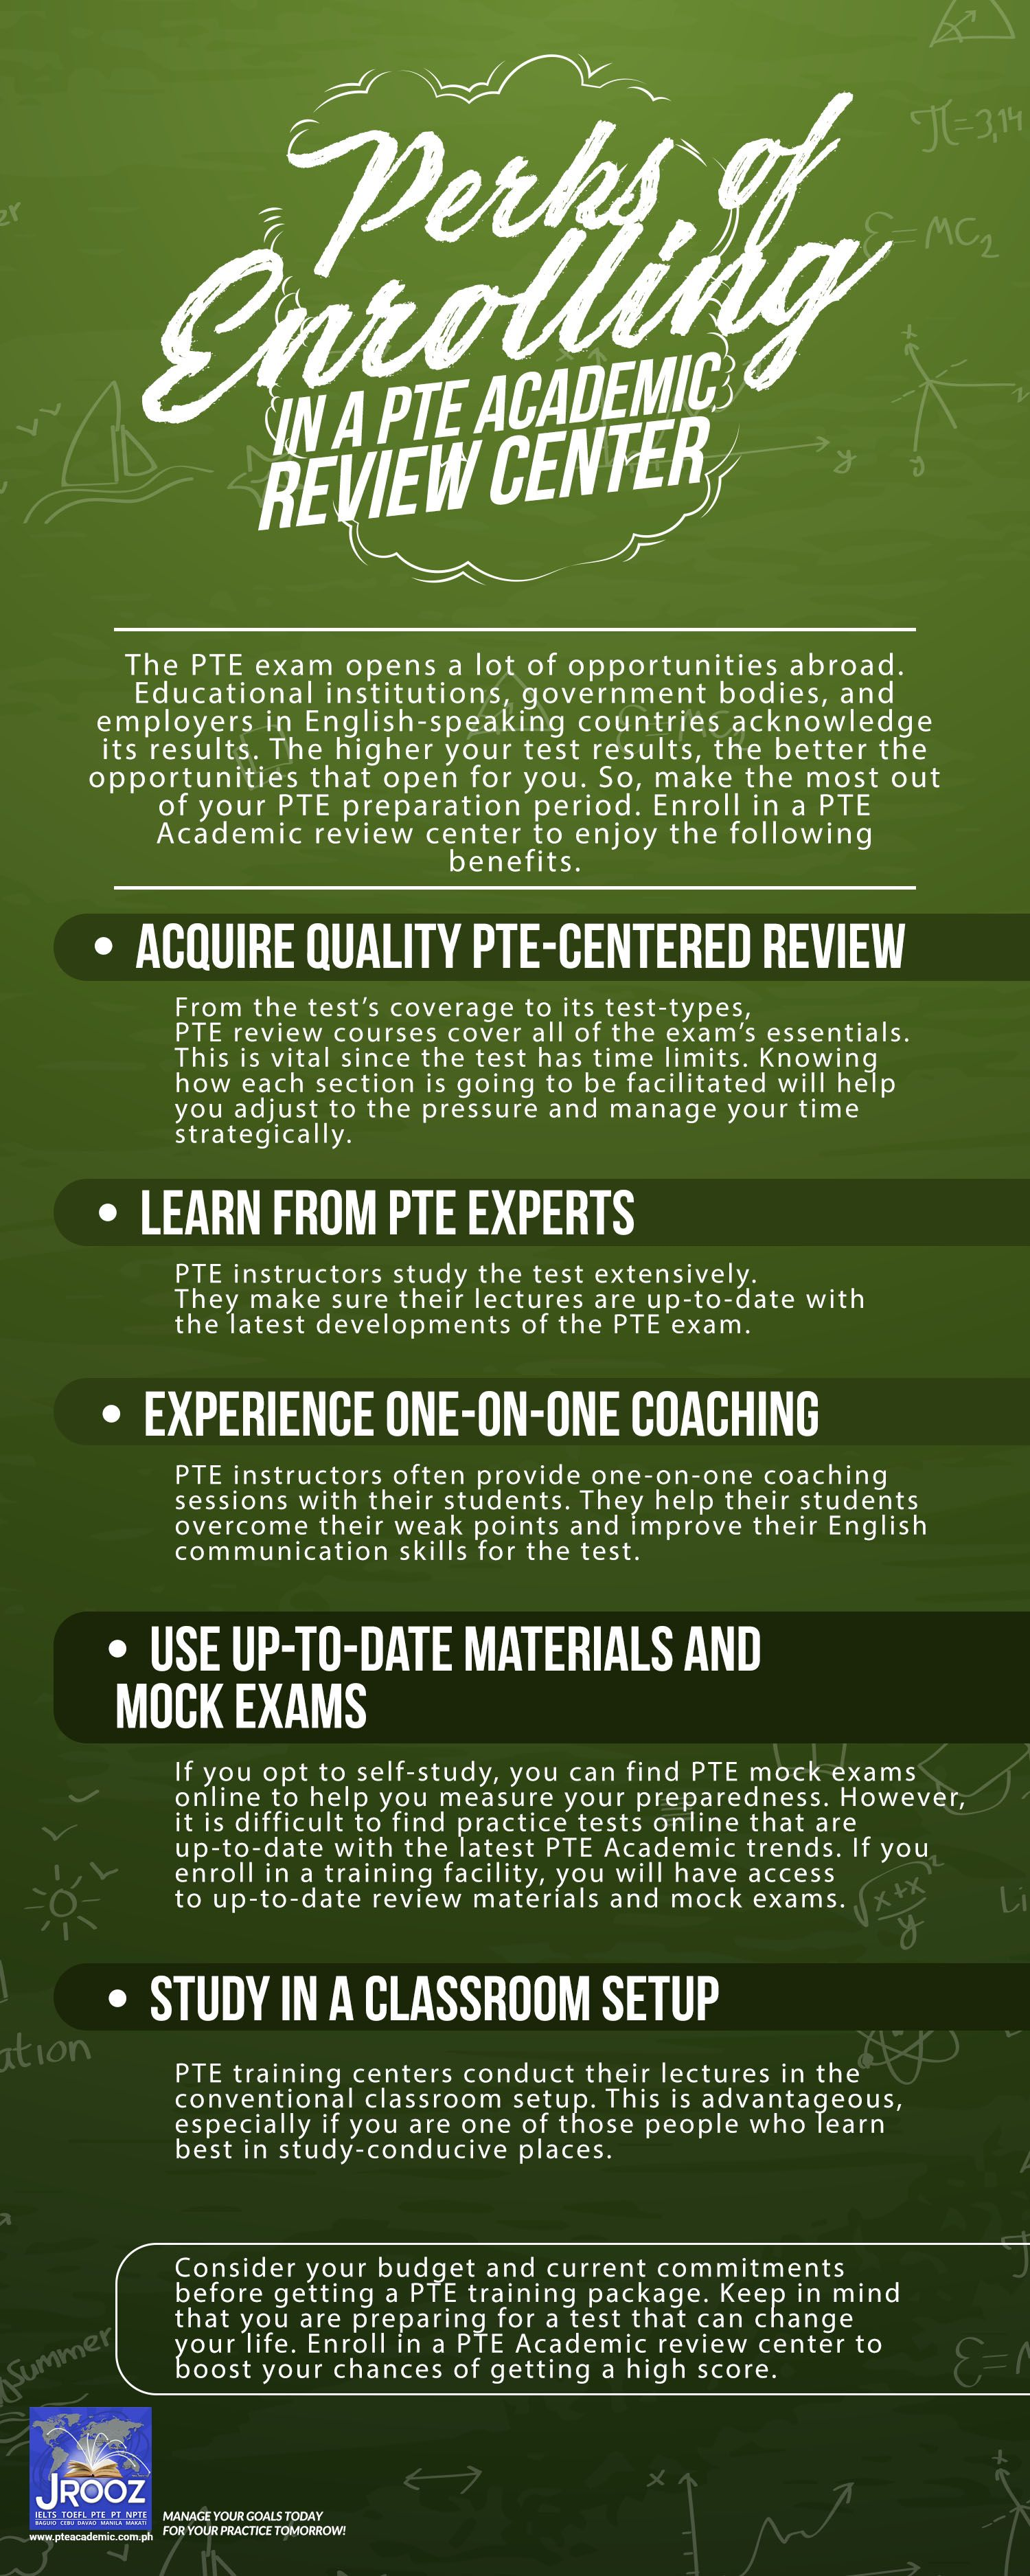 Perks of enrolling in a pte academic review center the pte exam perks of enrolling in a pte academic review center the pte exam opens a lot of opportunities abroad educational institutions government bodies xflitez Choice Image